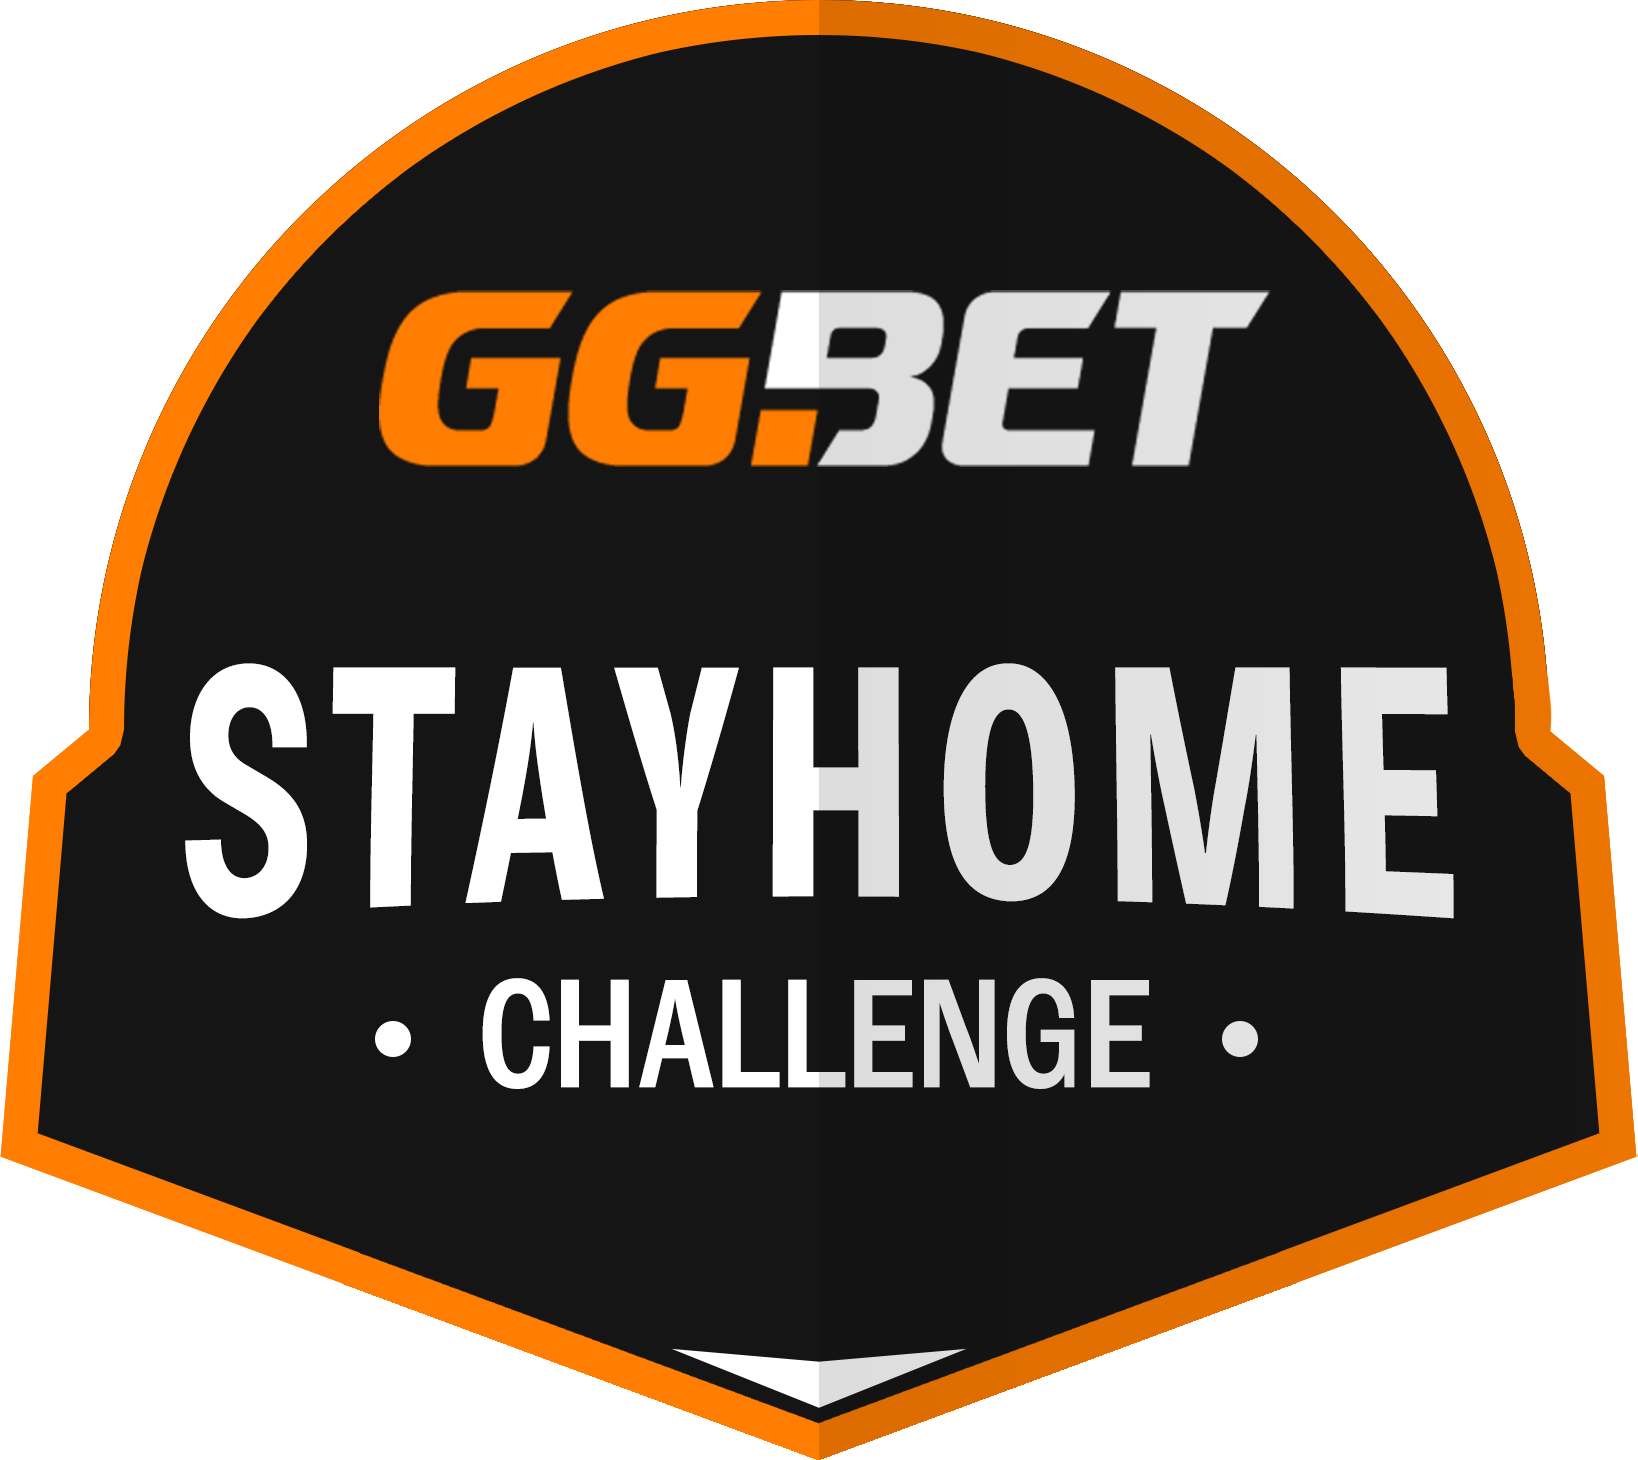 GGBET Championship StayHome Challenge Season 1 2020 Tournament